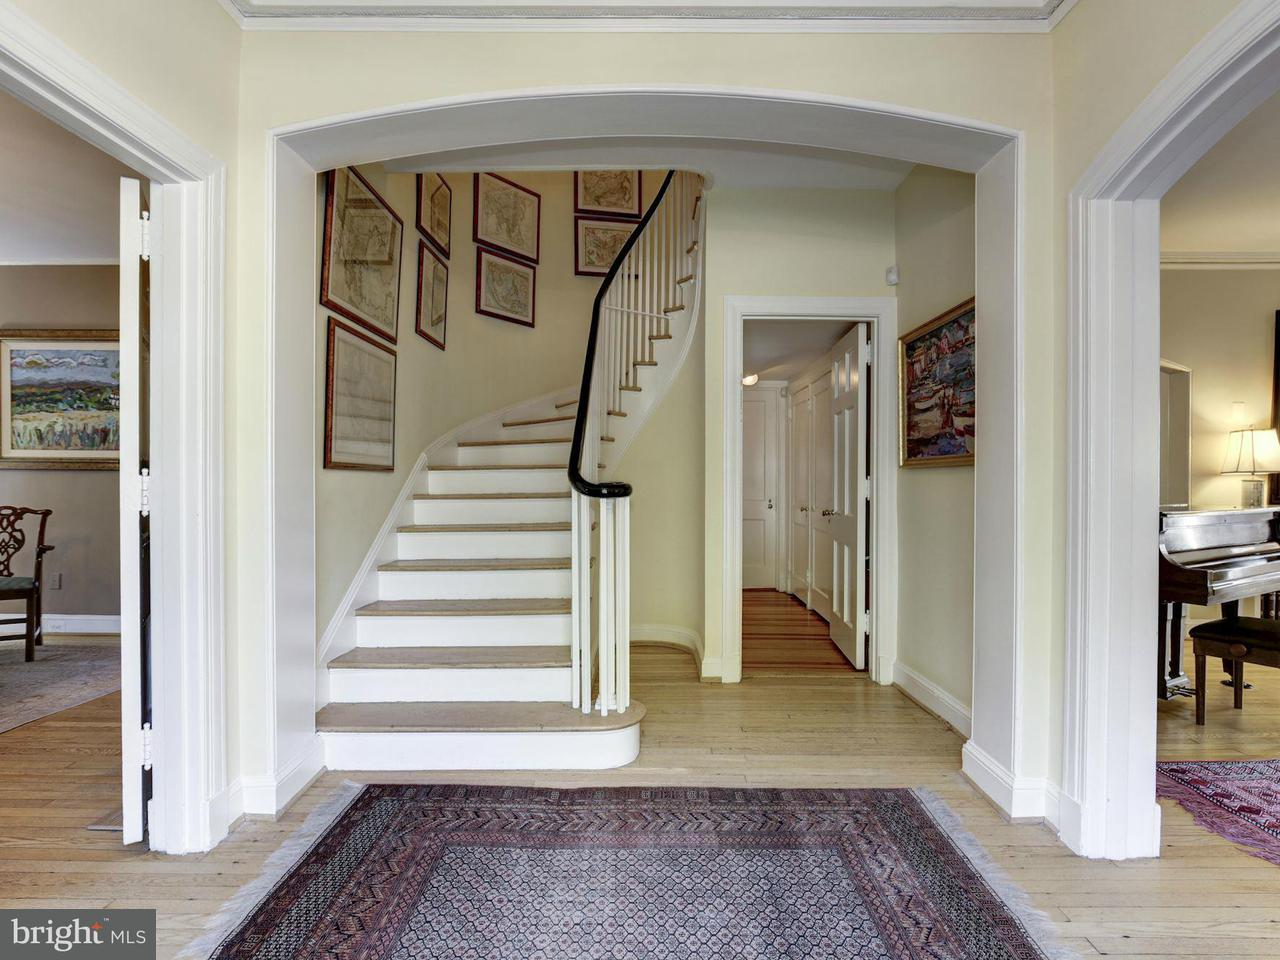 Additional photo for property listing at 3000 Woodland Dr Nw 3000 Woodland Dr Nw Washington, District Of Columbia 20008 Verenigde Staten